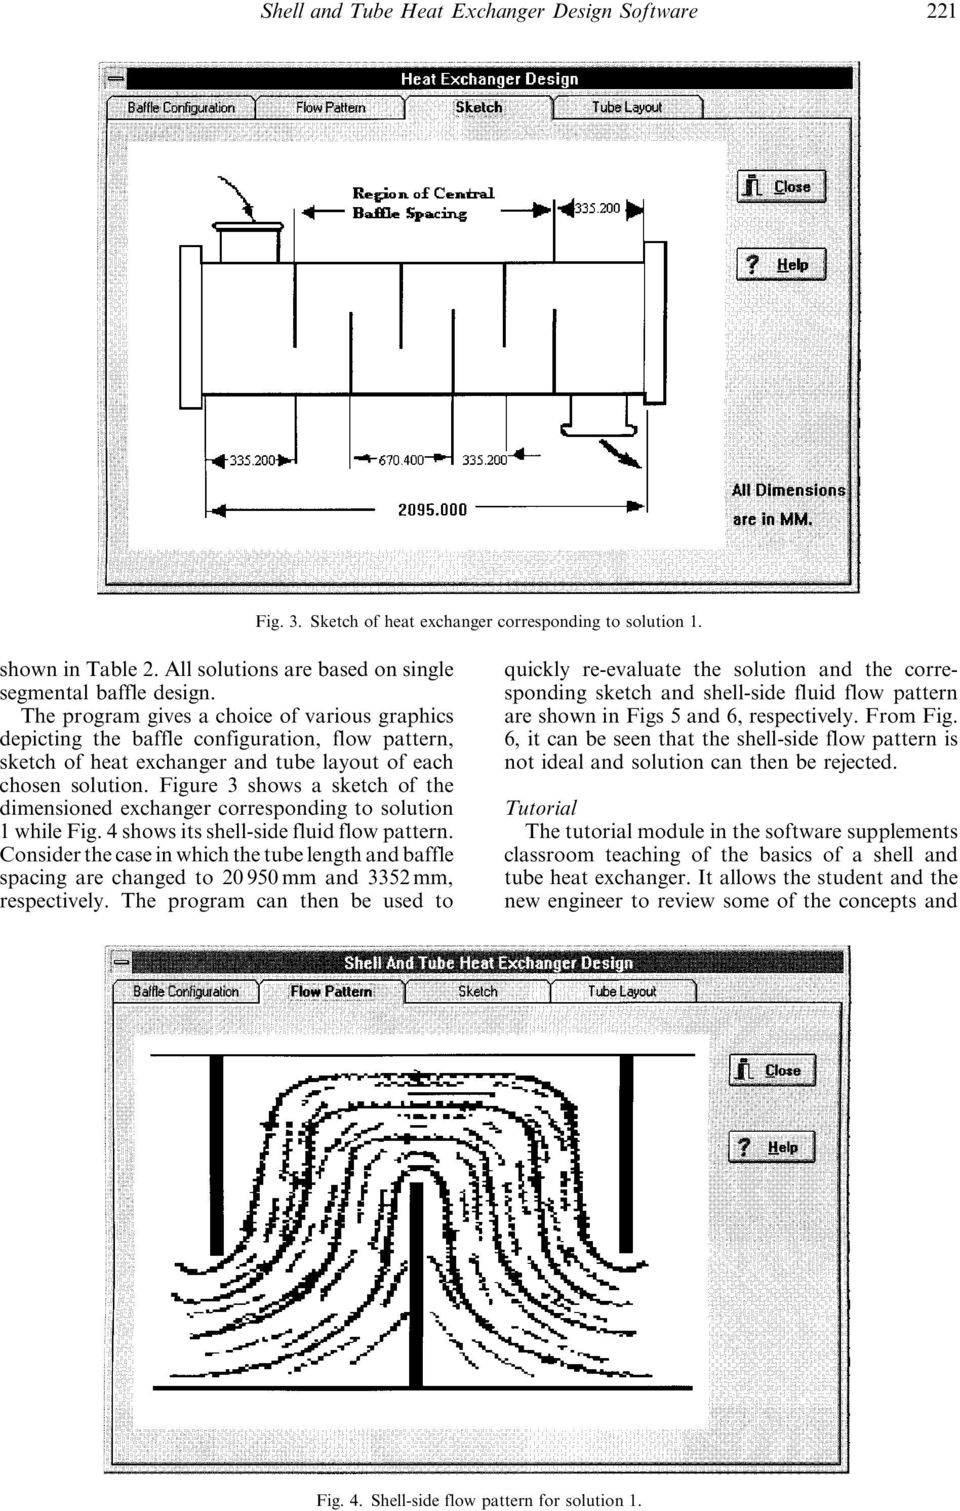 Shell and Tube Heat Exchanger Design Software for Educational